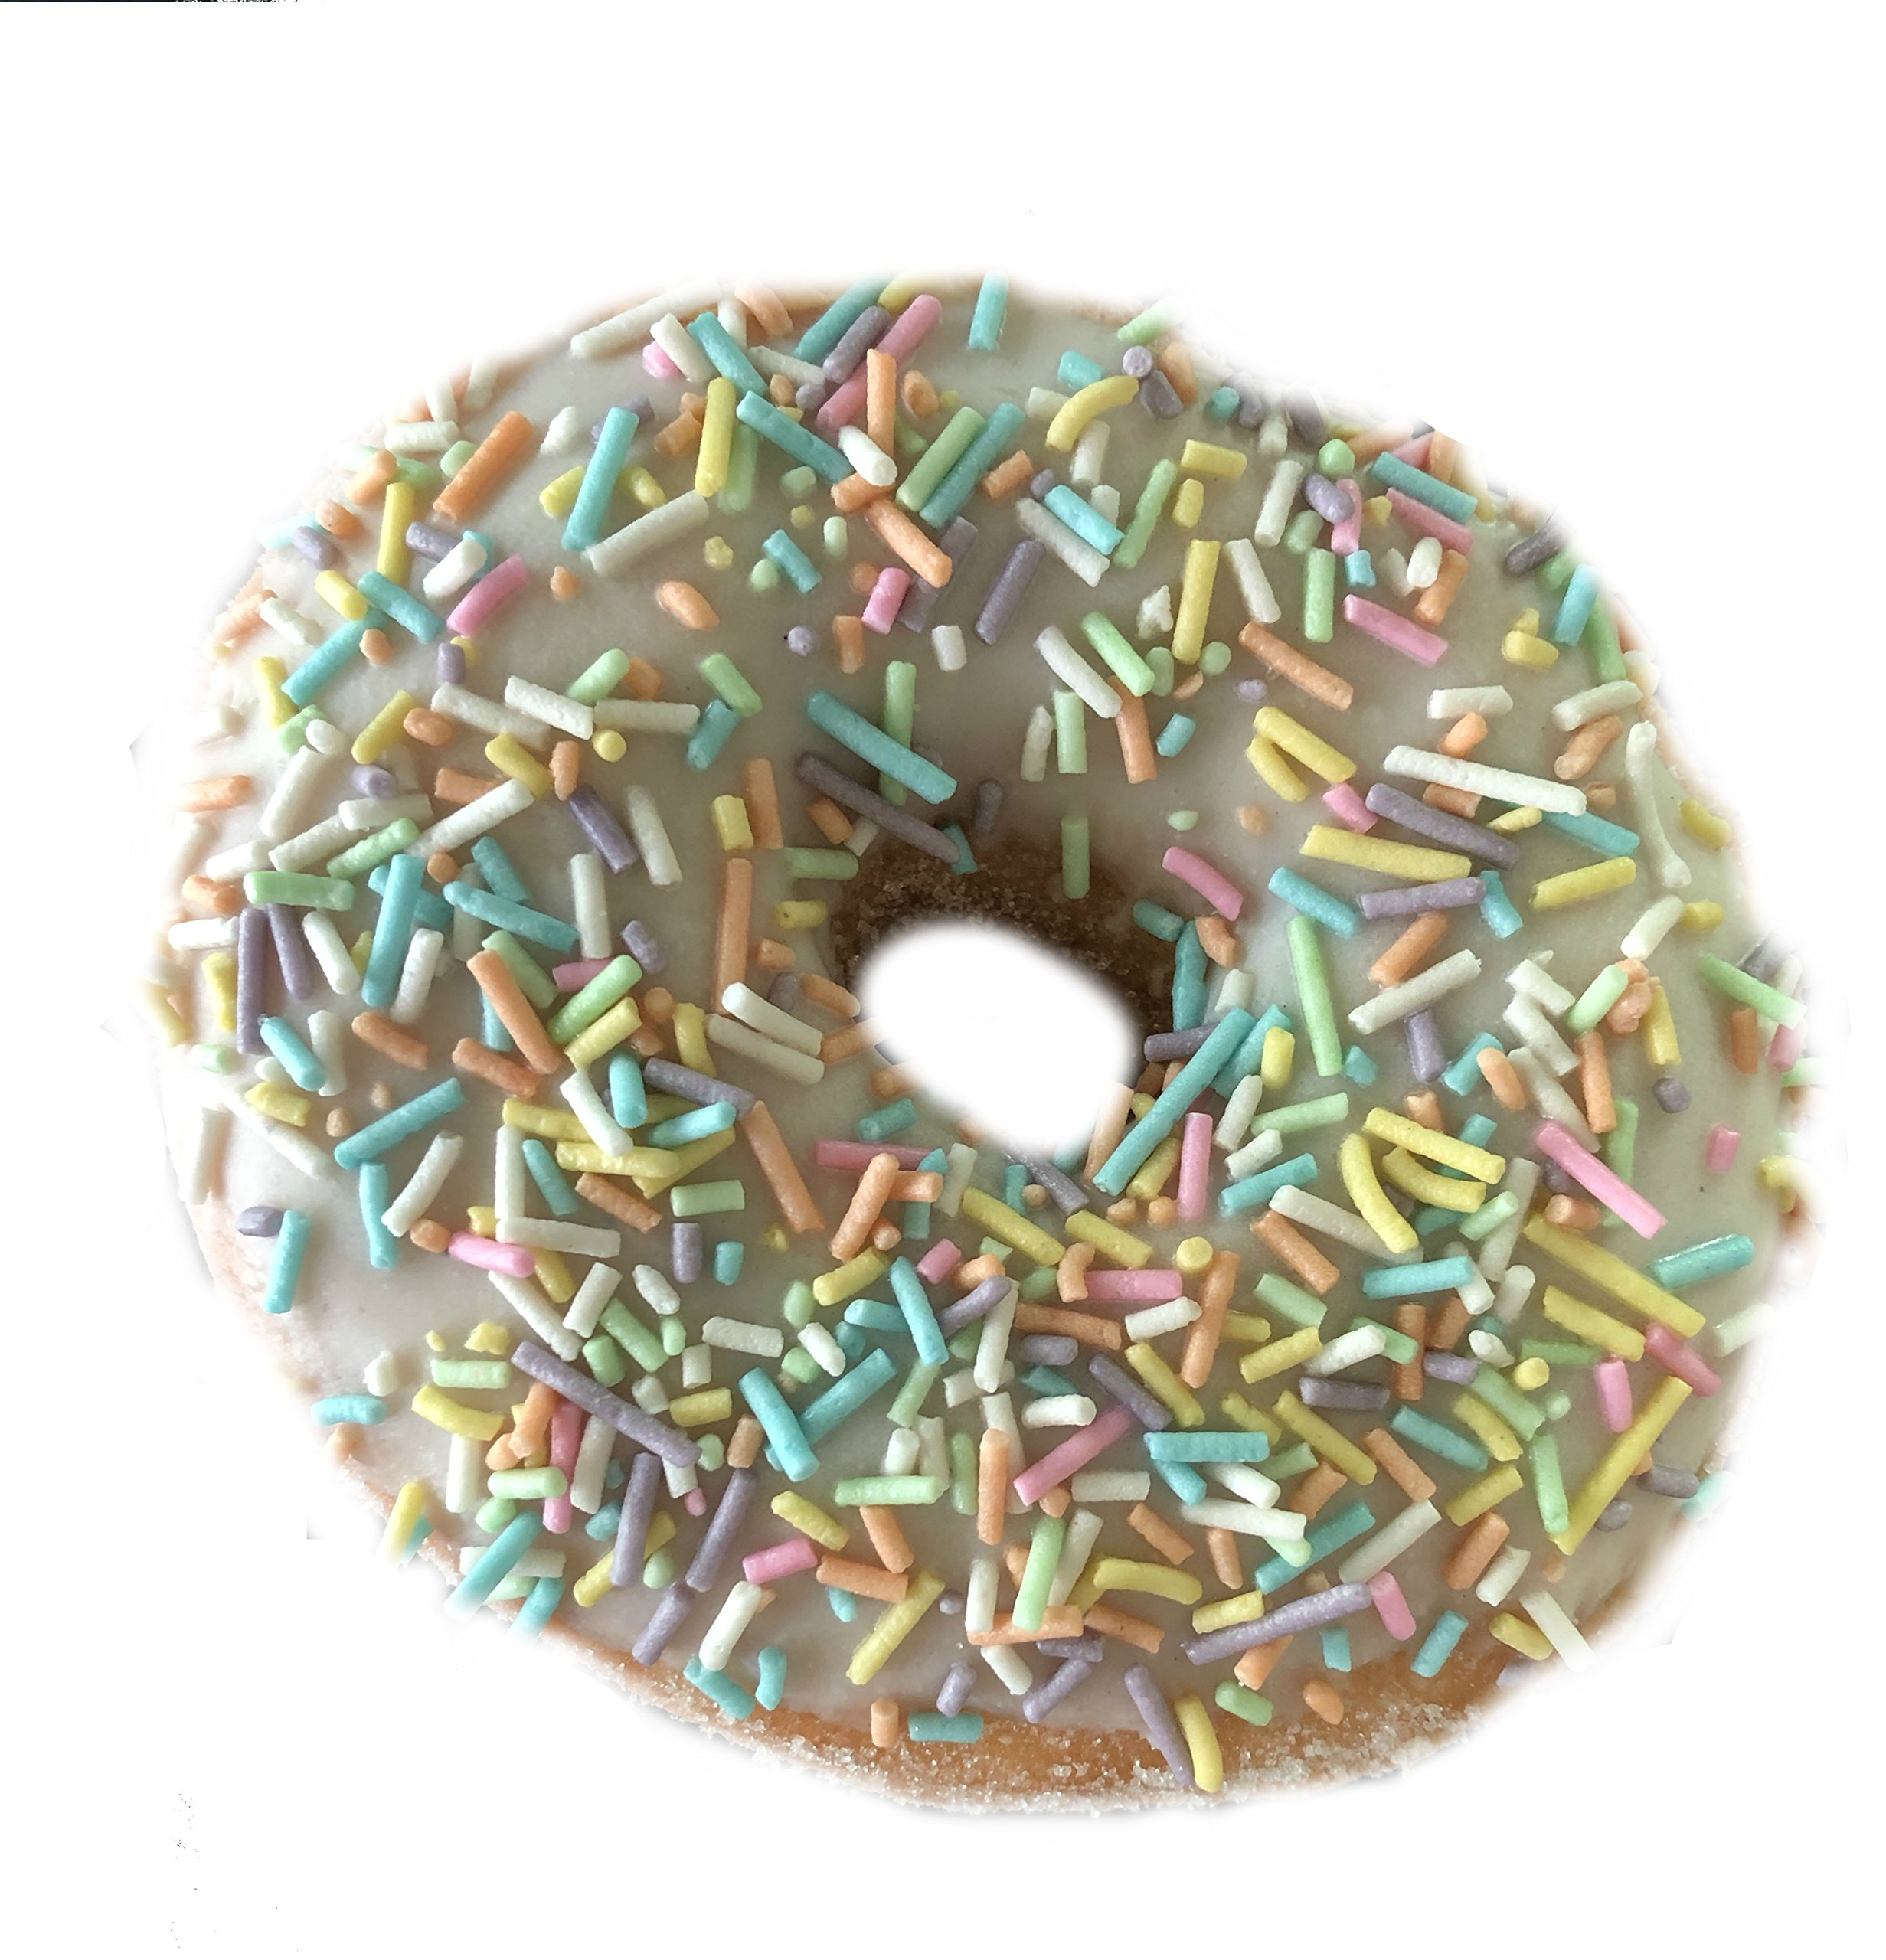 Sprinkles Jimmies Rainbow and Pastel Collection 100% sugar, gluten free 10.58 Oz.